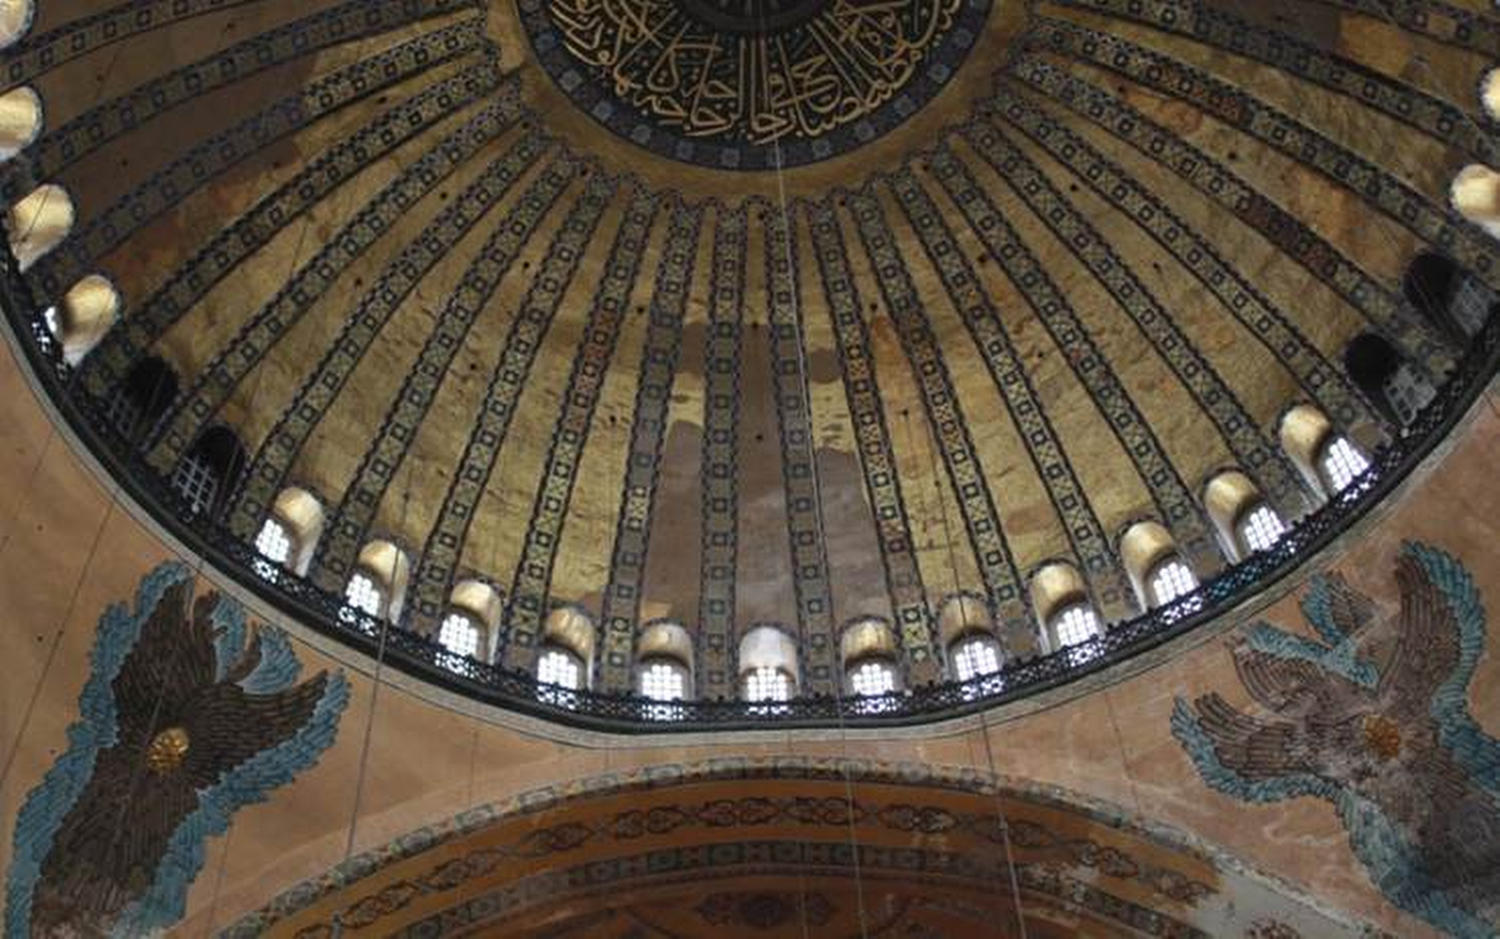 The interior of Istanbul's Hagia Sophia Museum, which is being refurbished. It was initially a church but later converted to a mosque. I found it amusing that frescoes (lower corners) and Islamic calligraphy (center top) coexist in the same space, yet in the world outside of a museum, the two rarely appear in the same context. Phillip Dube '16/Bates College.